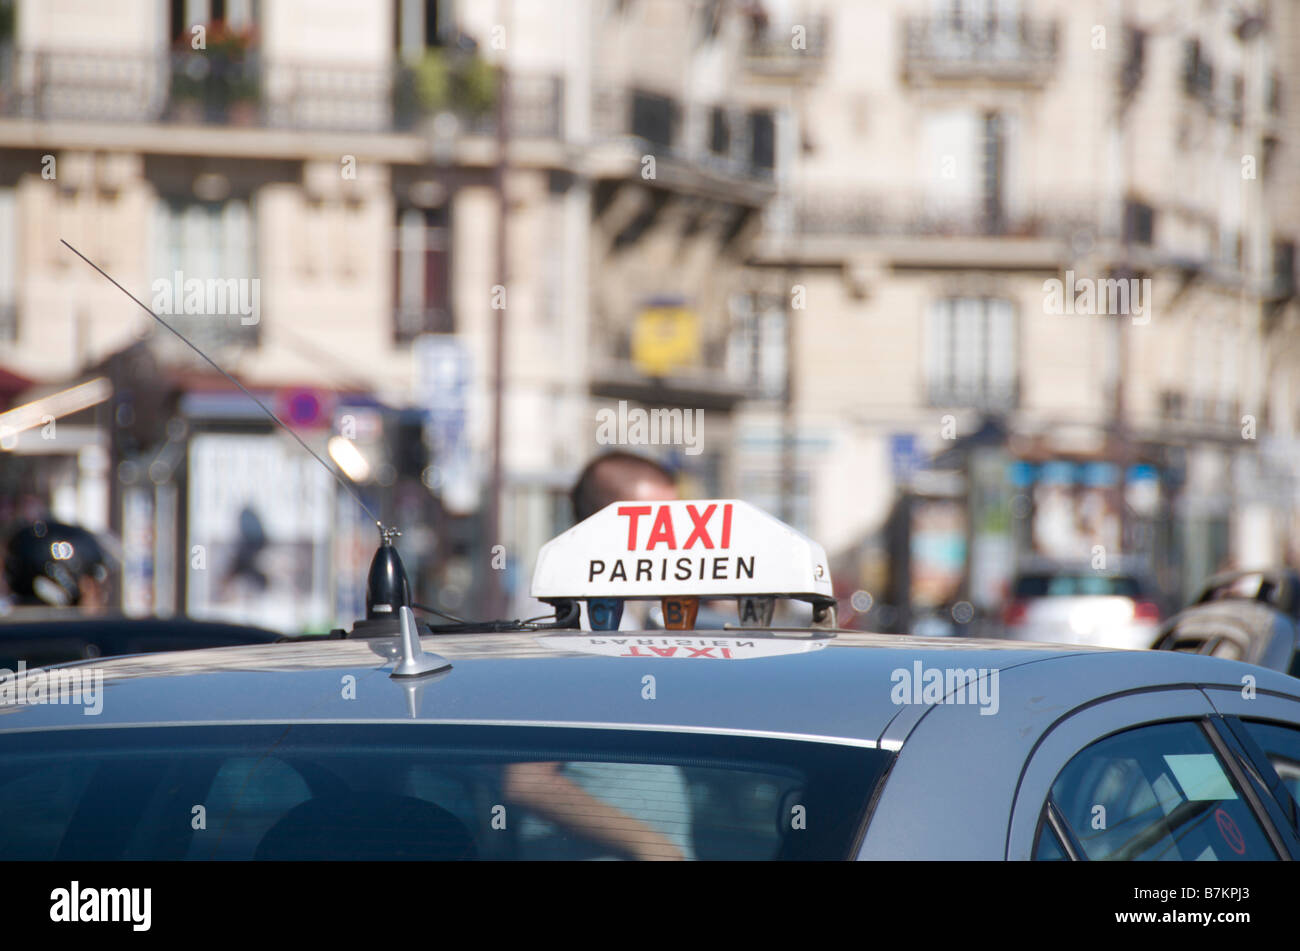 Taxi in Paris, France - Stock Image